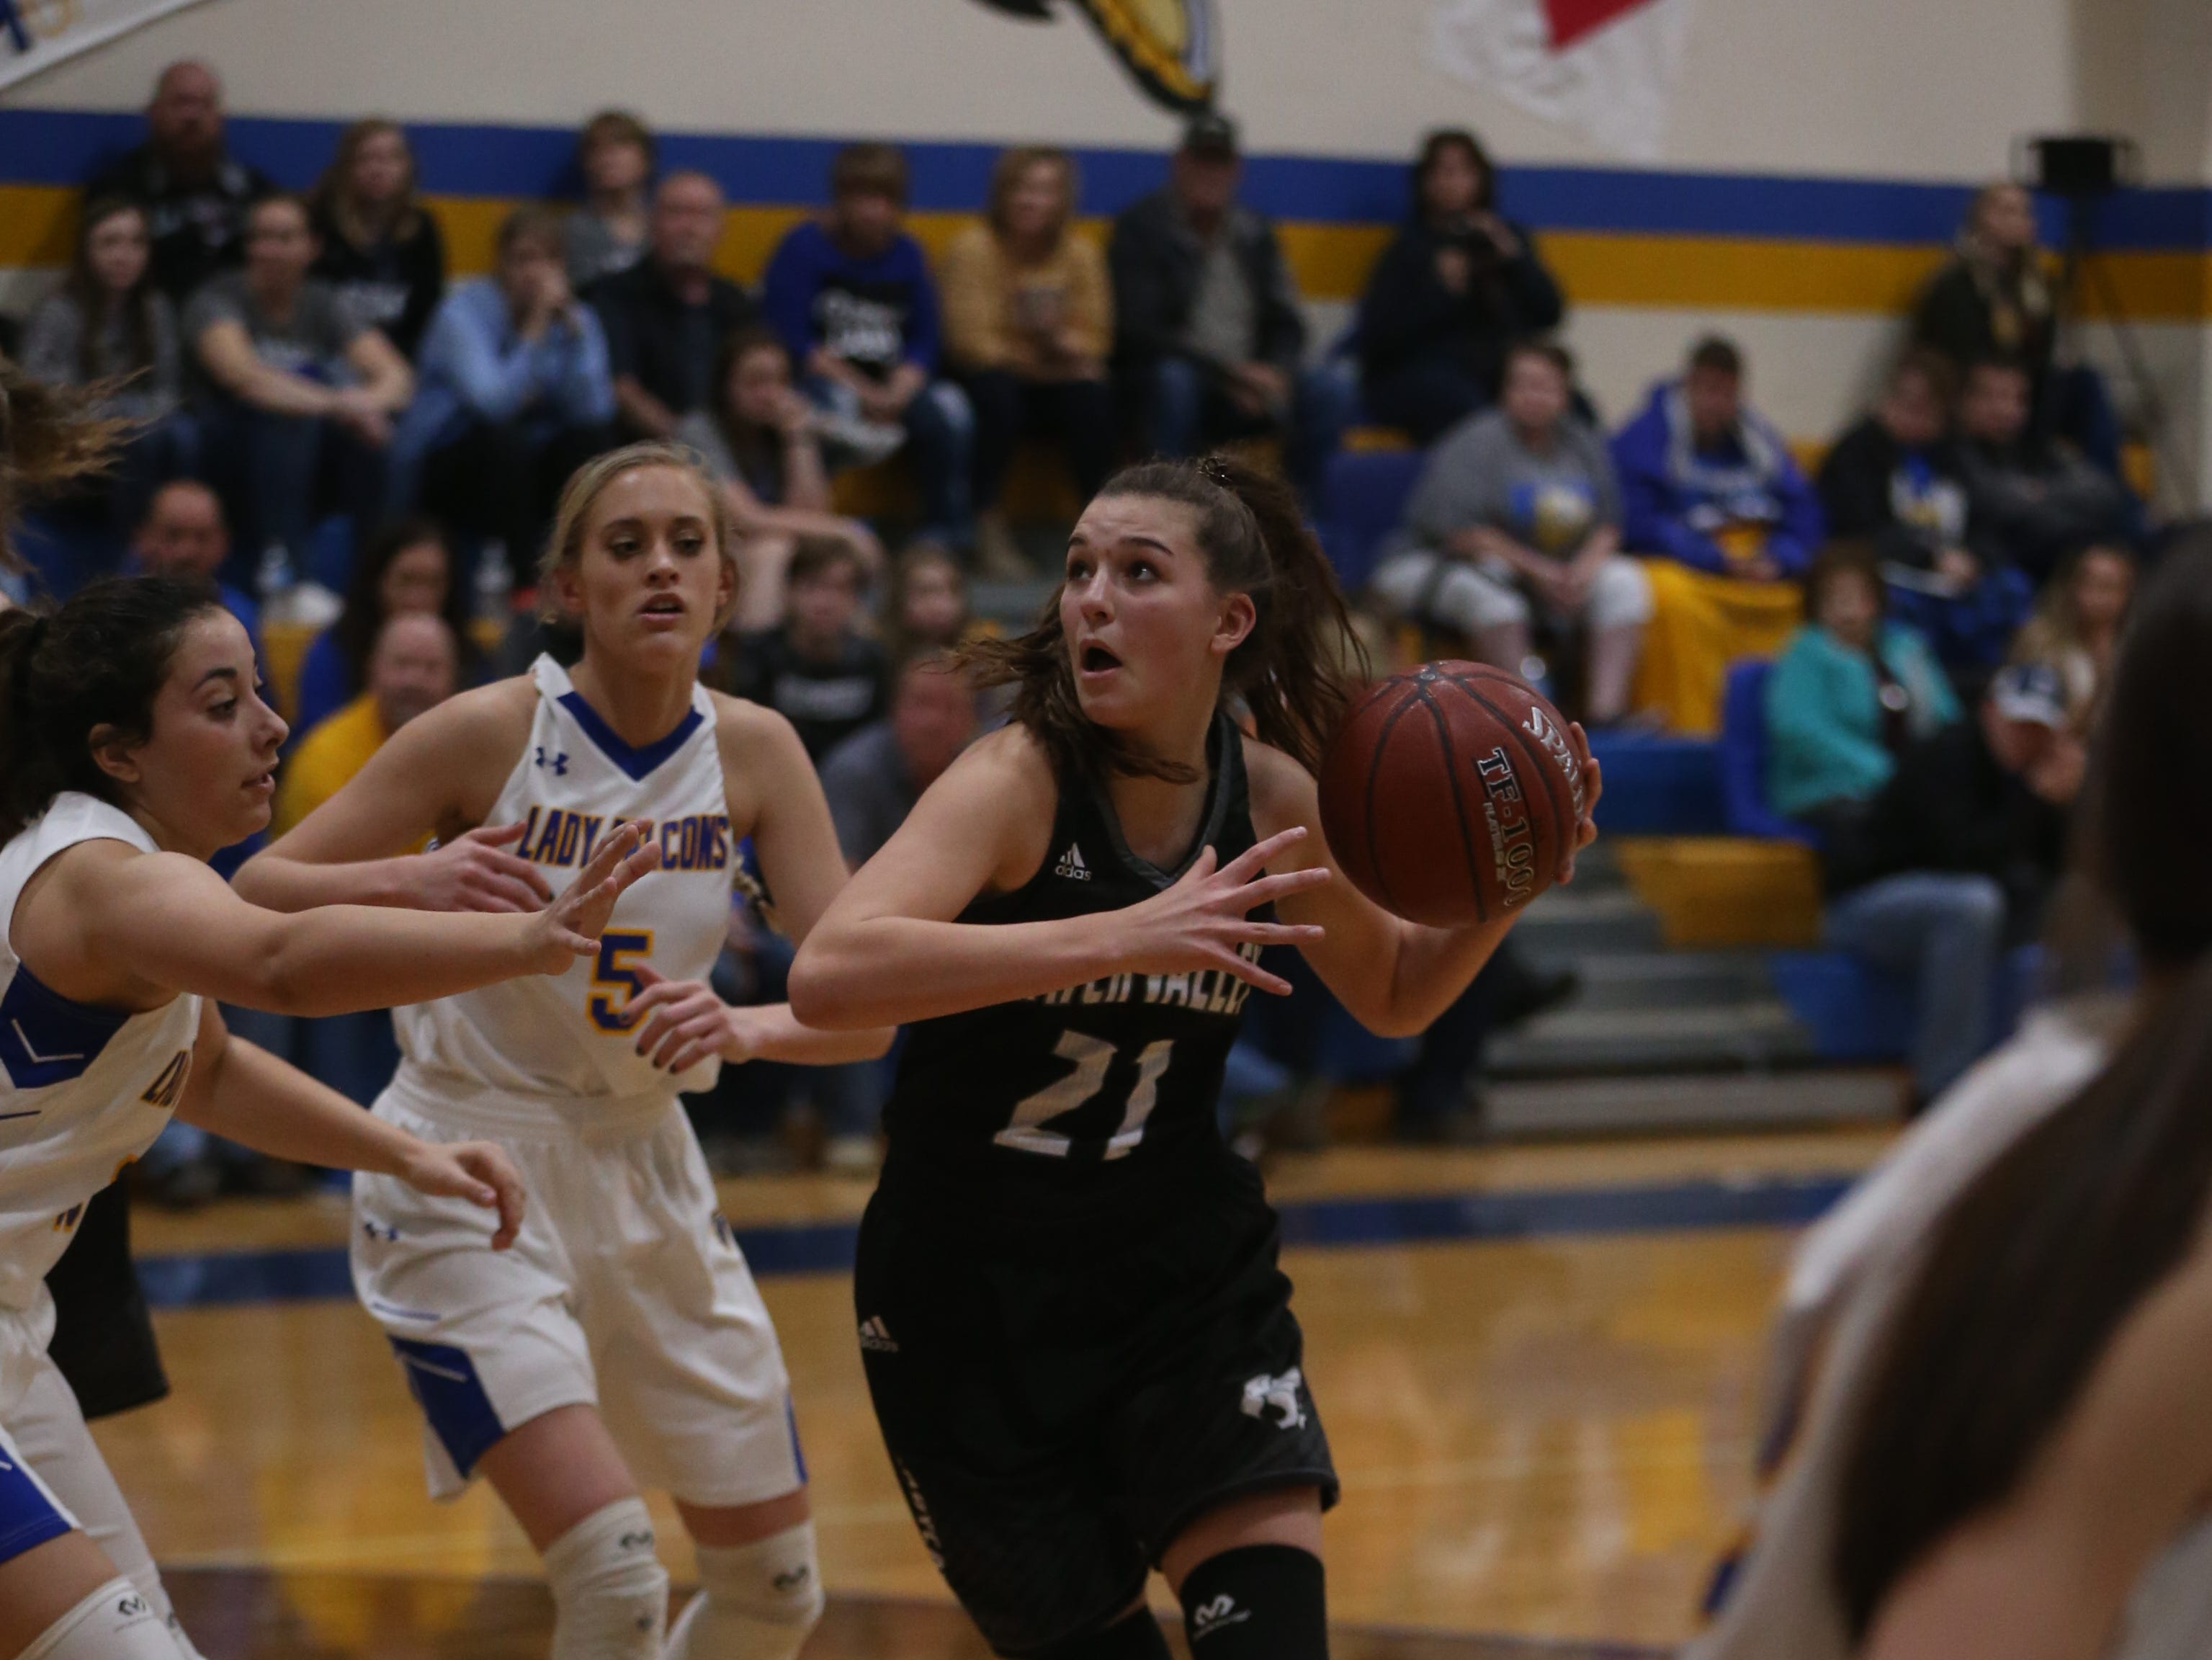 Water Valley's Bailey Dawson (#21) rushes toward the basket Tuesday, Jan. 8, 2019 during the game against Veribest.